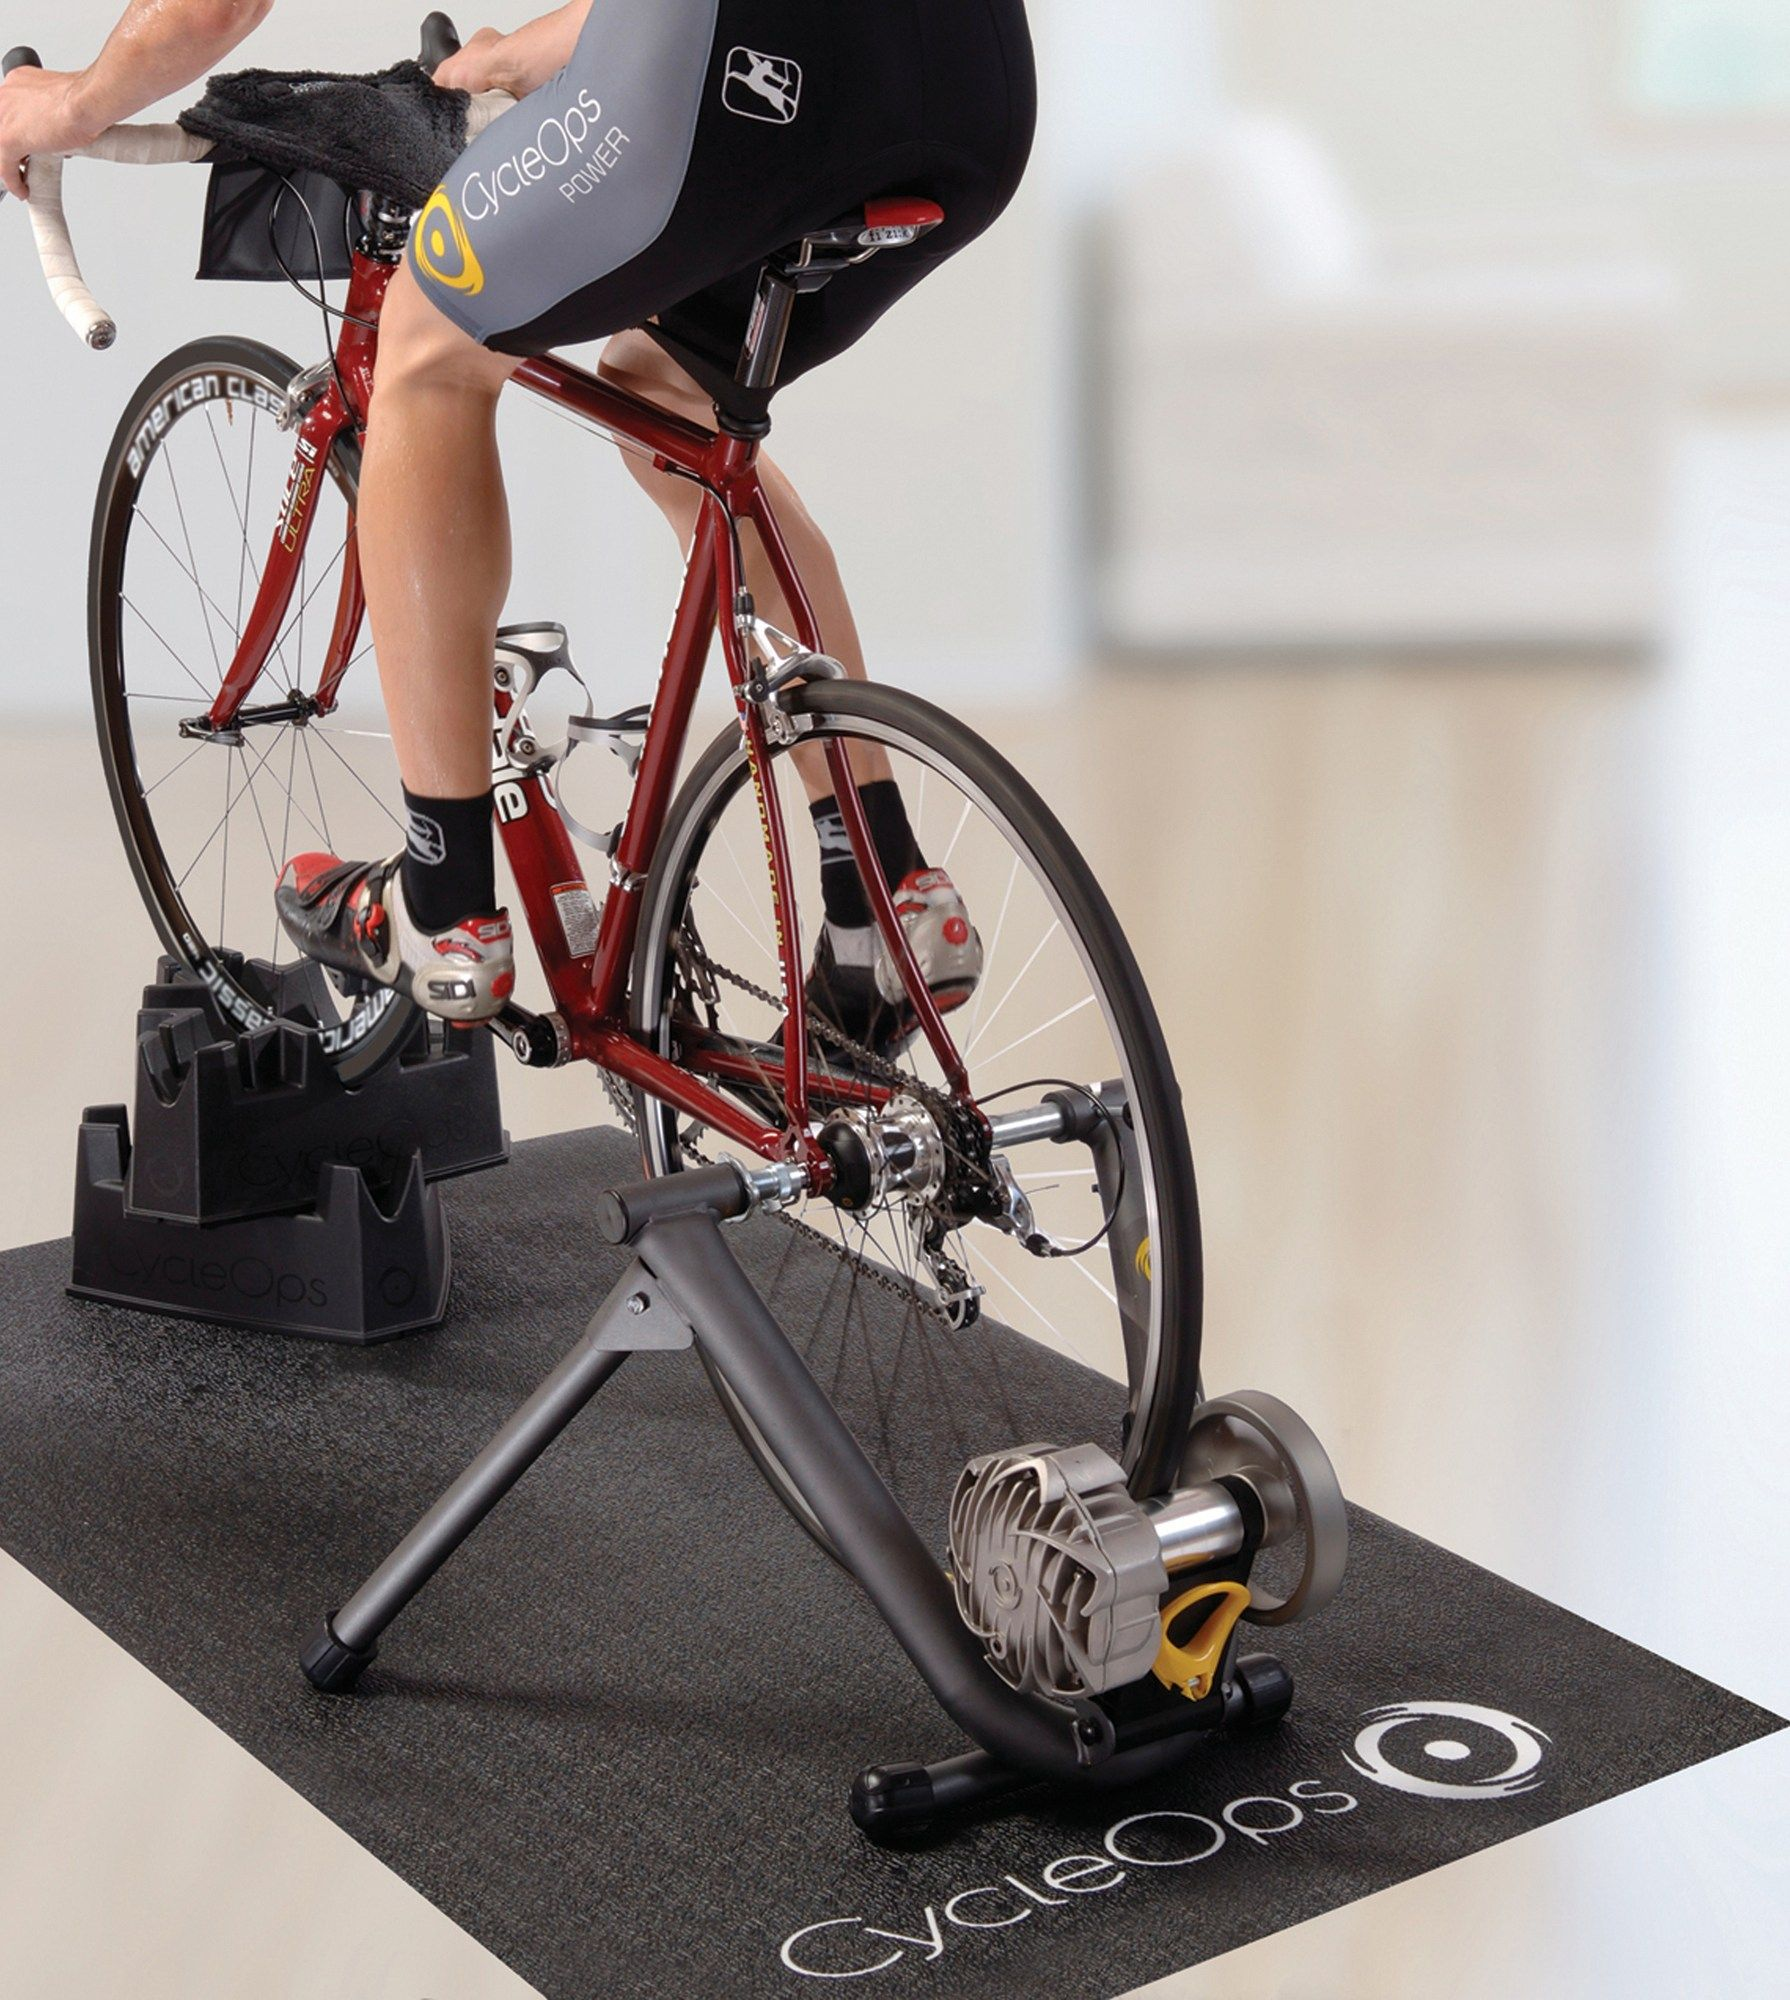 The Cycleops Fluid2 Bike Trainer And Training Kit Give You